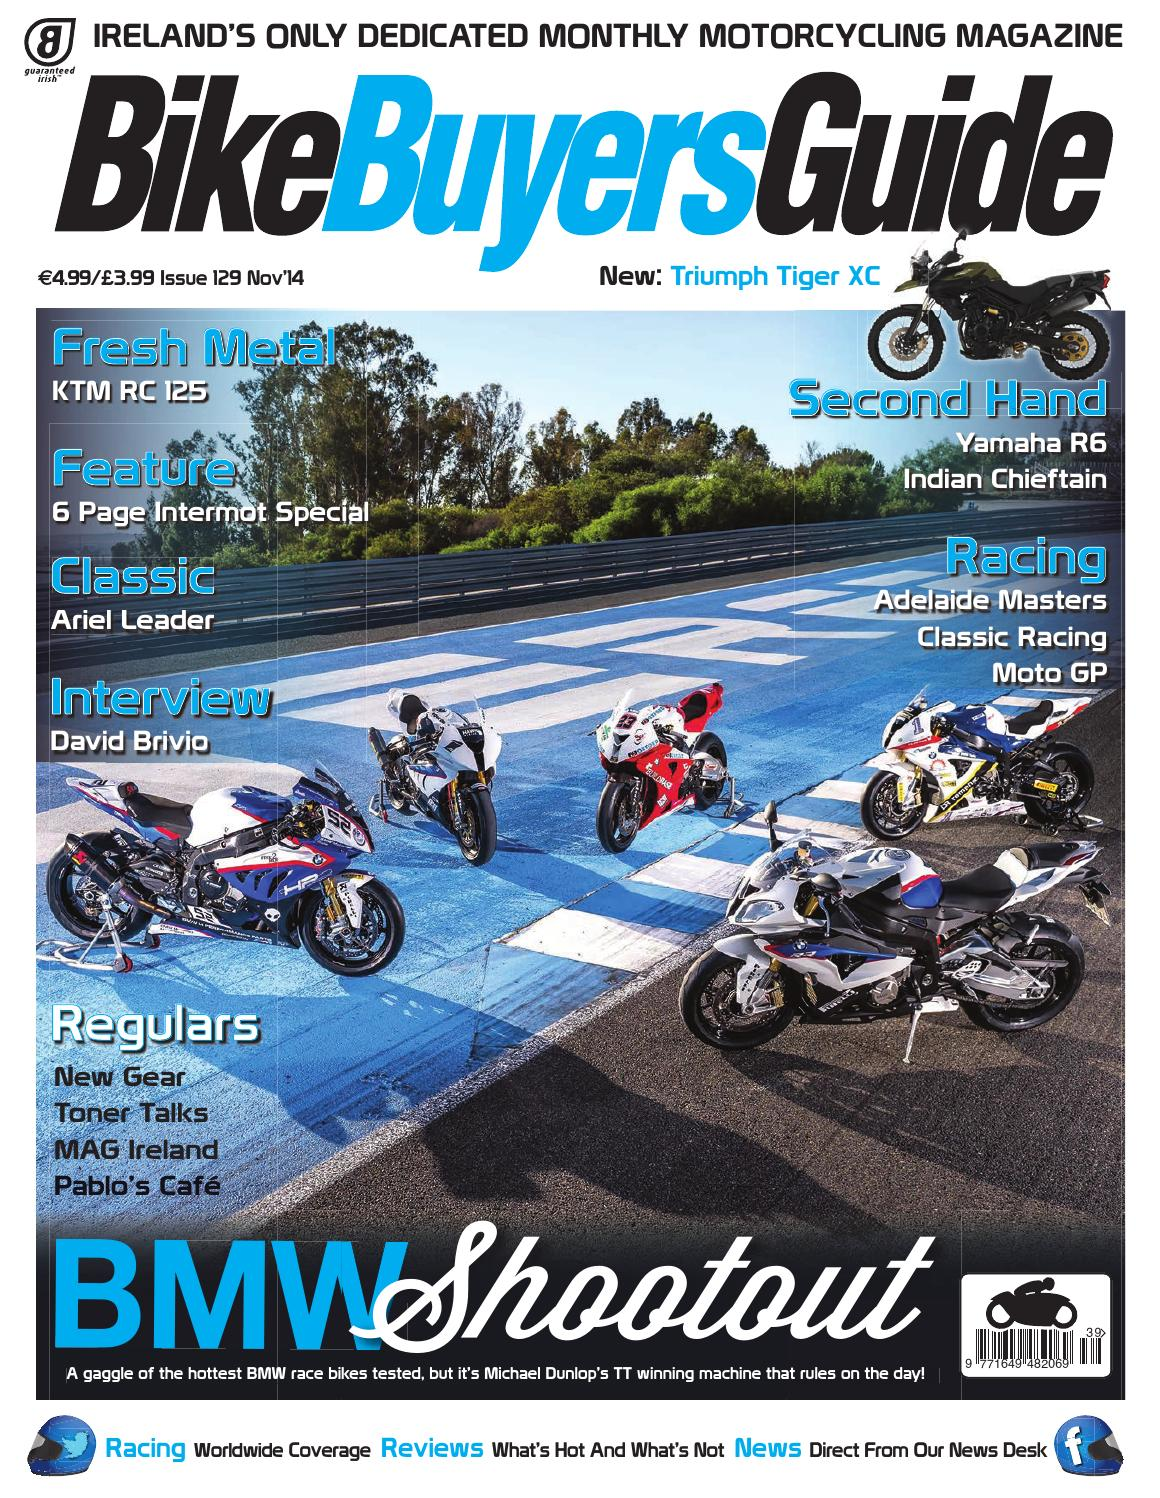 372f45615d599 Bike Buyers Guide 128 by Clear Designs - issuu